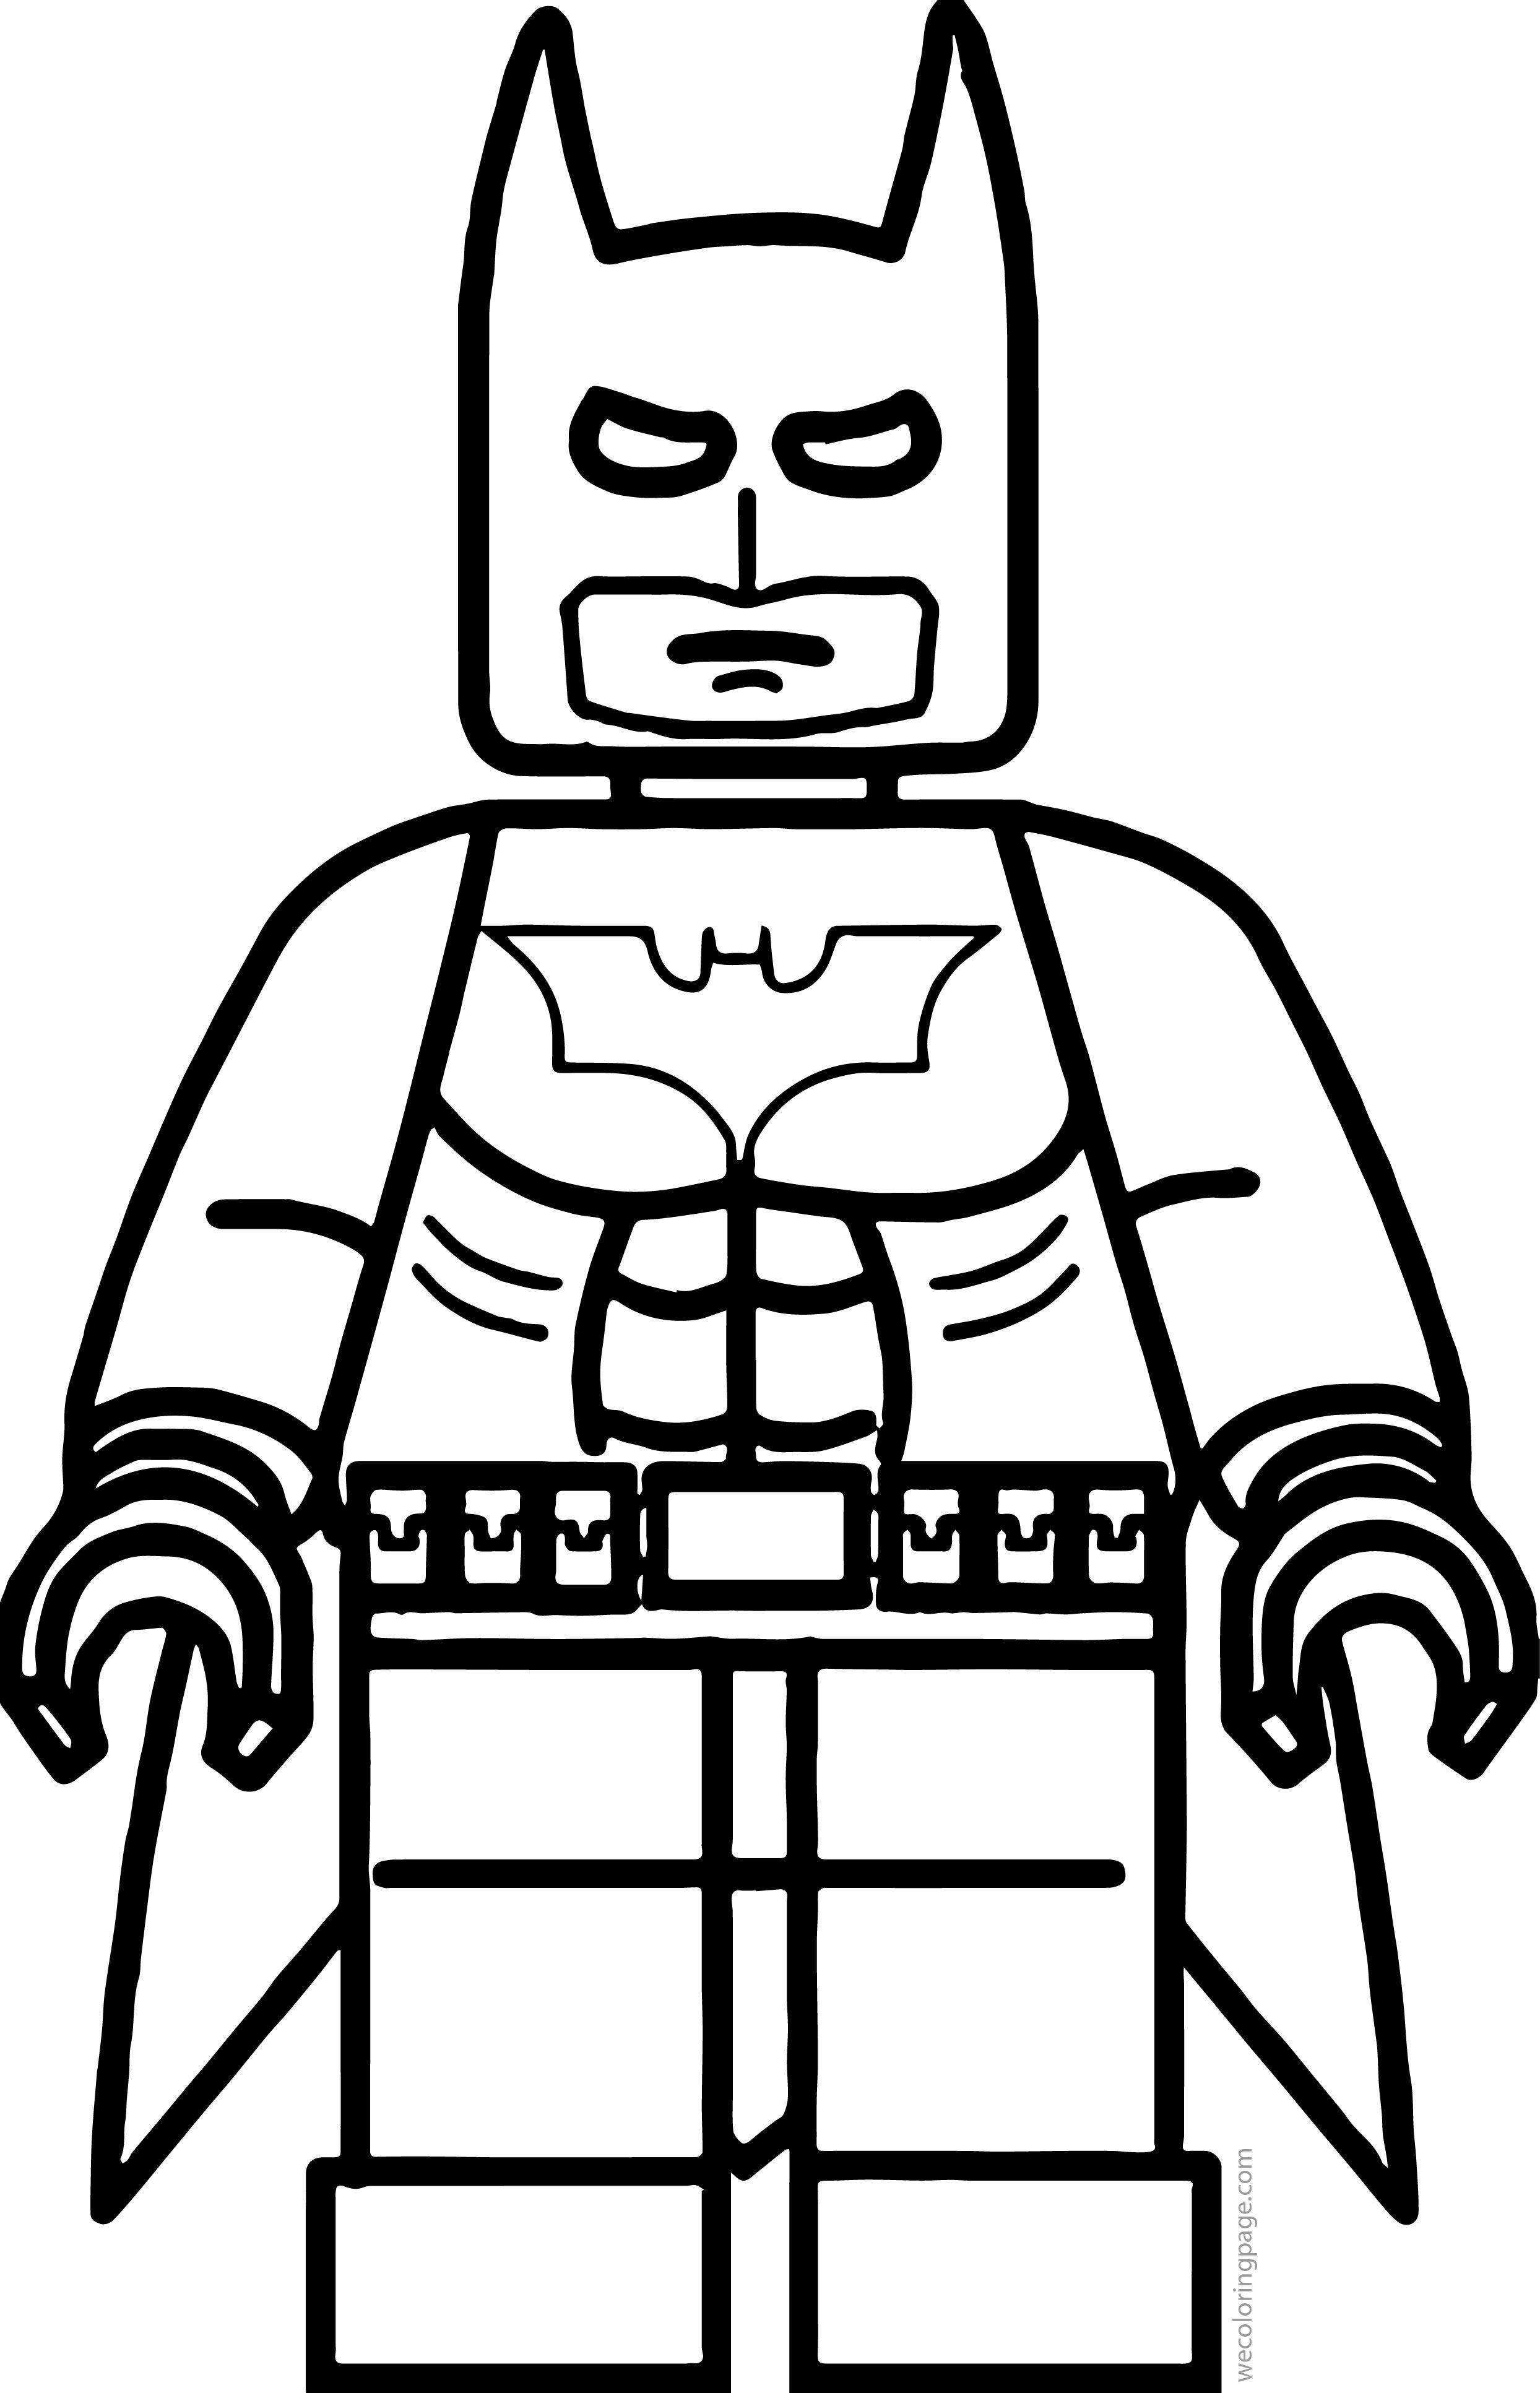 lego free printable coloring pages free coloring pages printable pictures to color kids pages free lego printable coloring